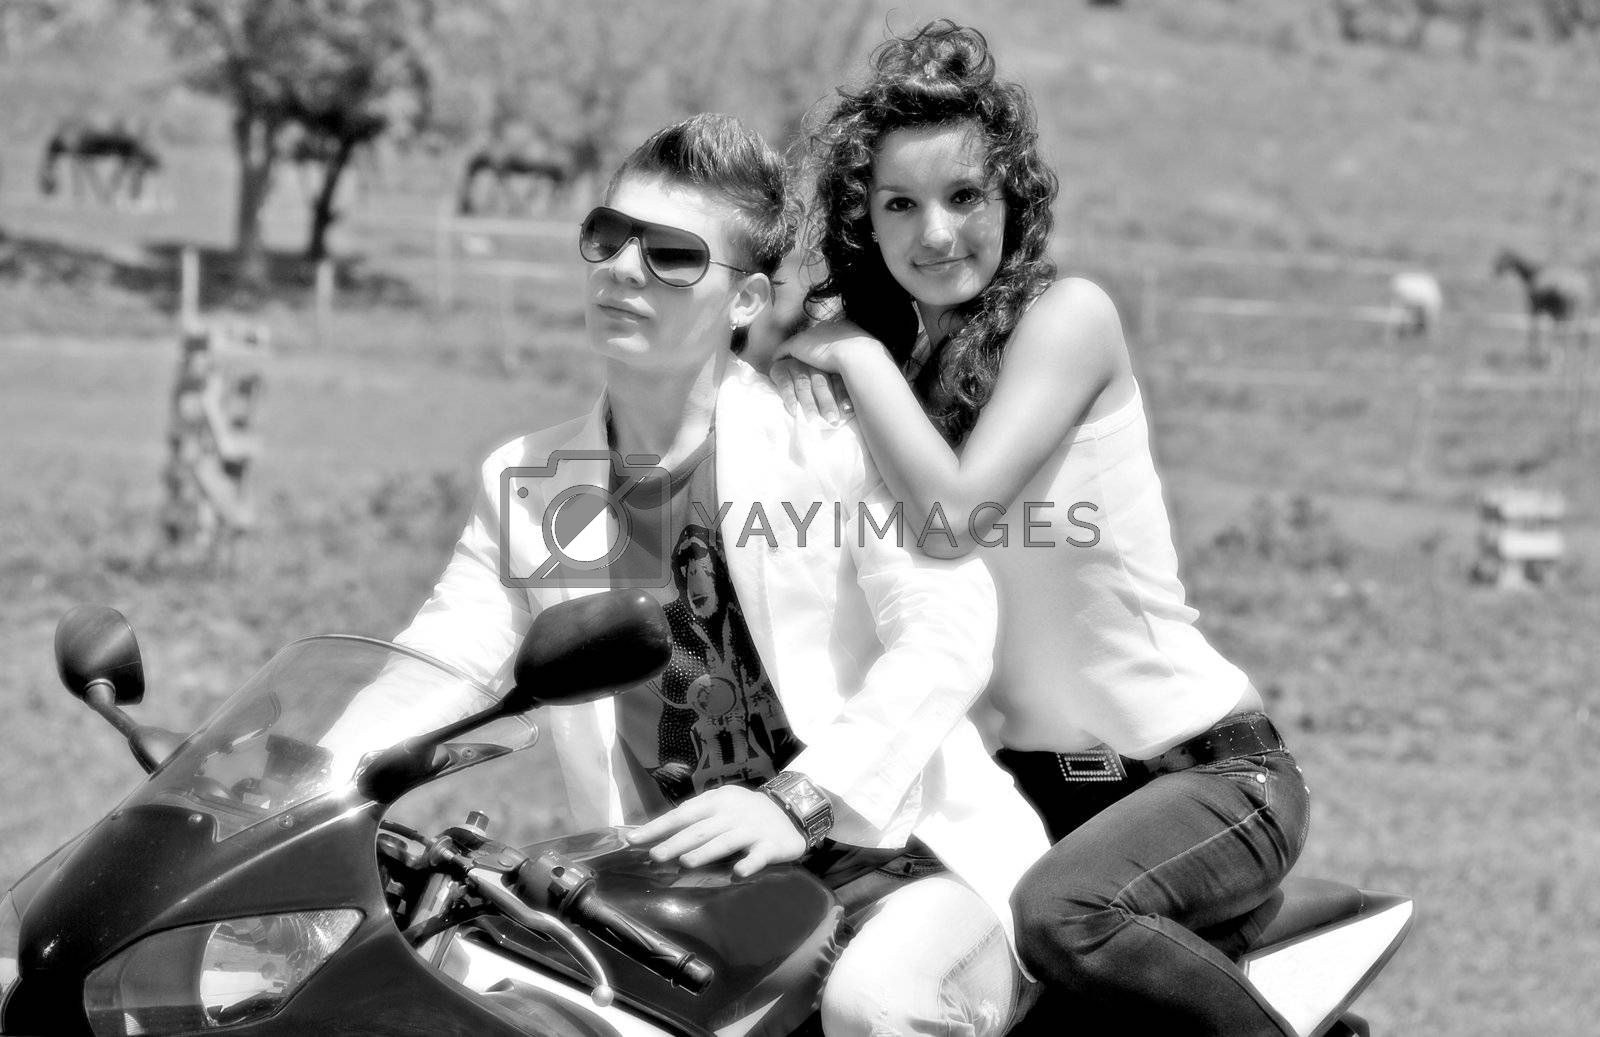 young couple in love riding a motorbike